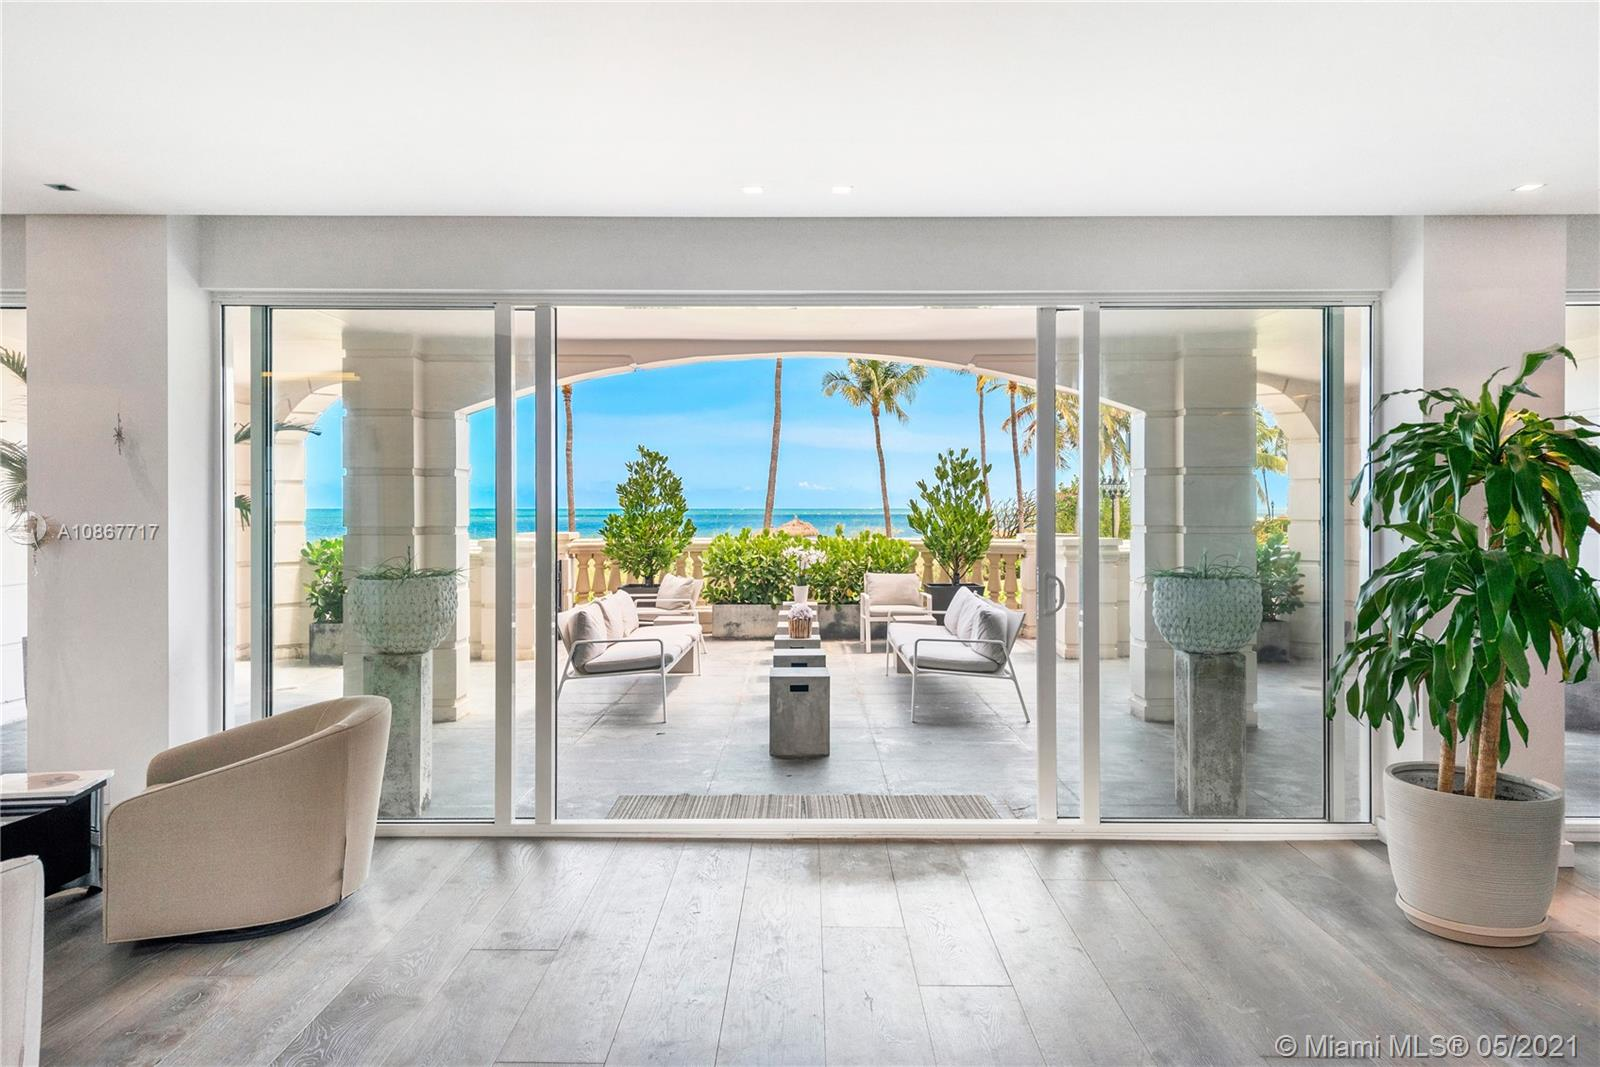 This stunning ground-floor Oceanside unit on Fisher Island redefines luxury living at its finest. Completely renovated to perfection this masterpiece encompasses 5,800 sq. ft. interior, 4 bedrooms, 4.5 baths, and showcases expansive terraces steps away from the sandy beach. Professionally designed, the unit features an open layout with a formal dining, living, exquisite wood and marble floors, a state-of-the-art kitchen, and bathrooms, impact glass doors, wine cellar, a spacious master bedroom with his and her walk-in closet, and many more features. Live the Fisher Island lifestyle in this private oasis!